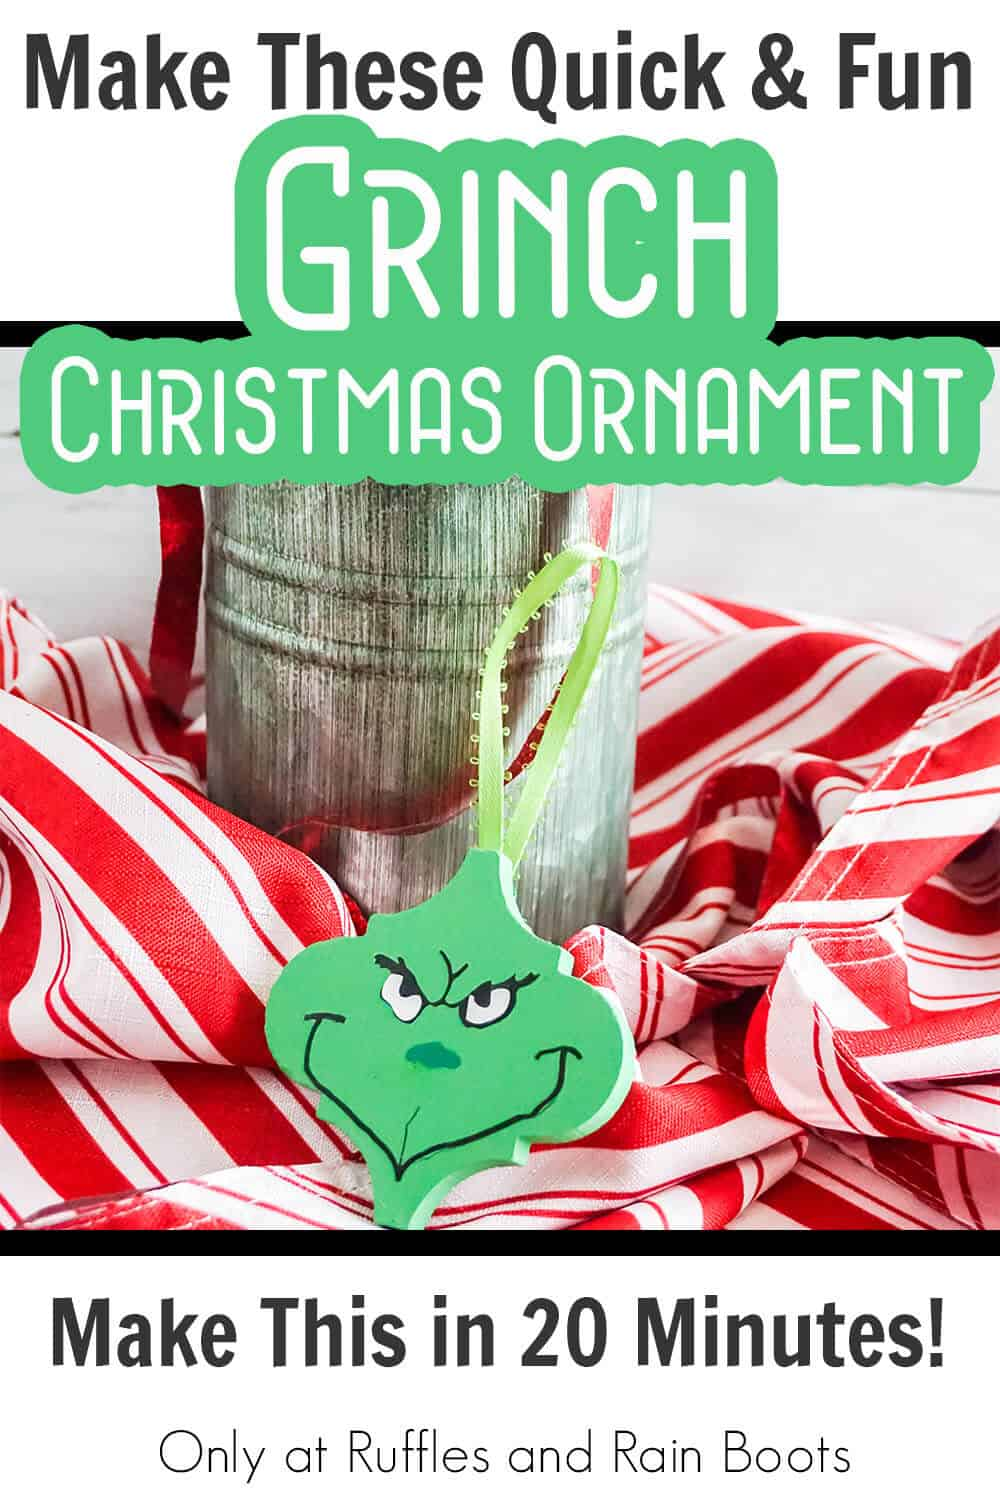 tile grinch head ornament cricut craft with text which reads make these quick & fun grinch christmas ornaments make this in 20 minutes!